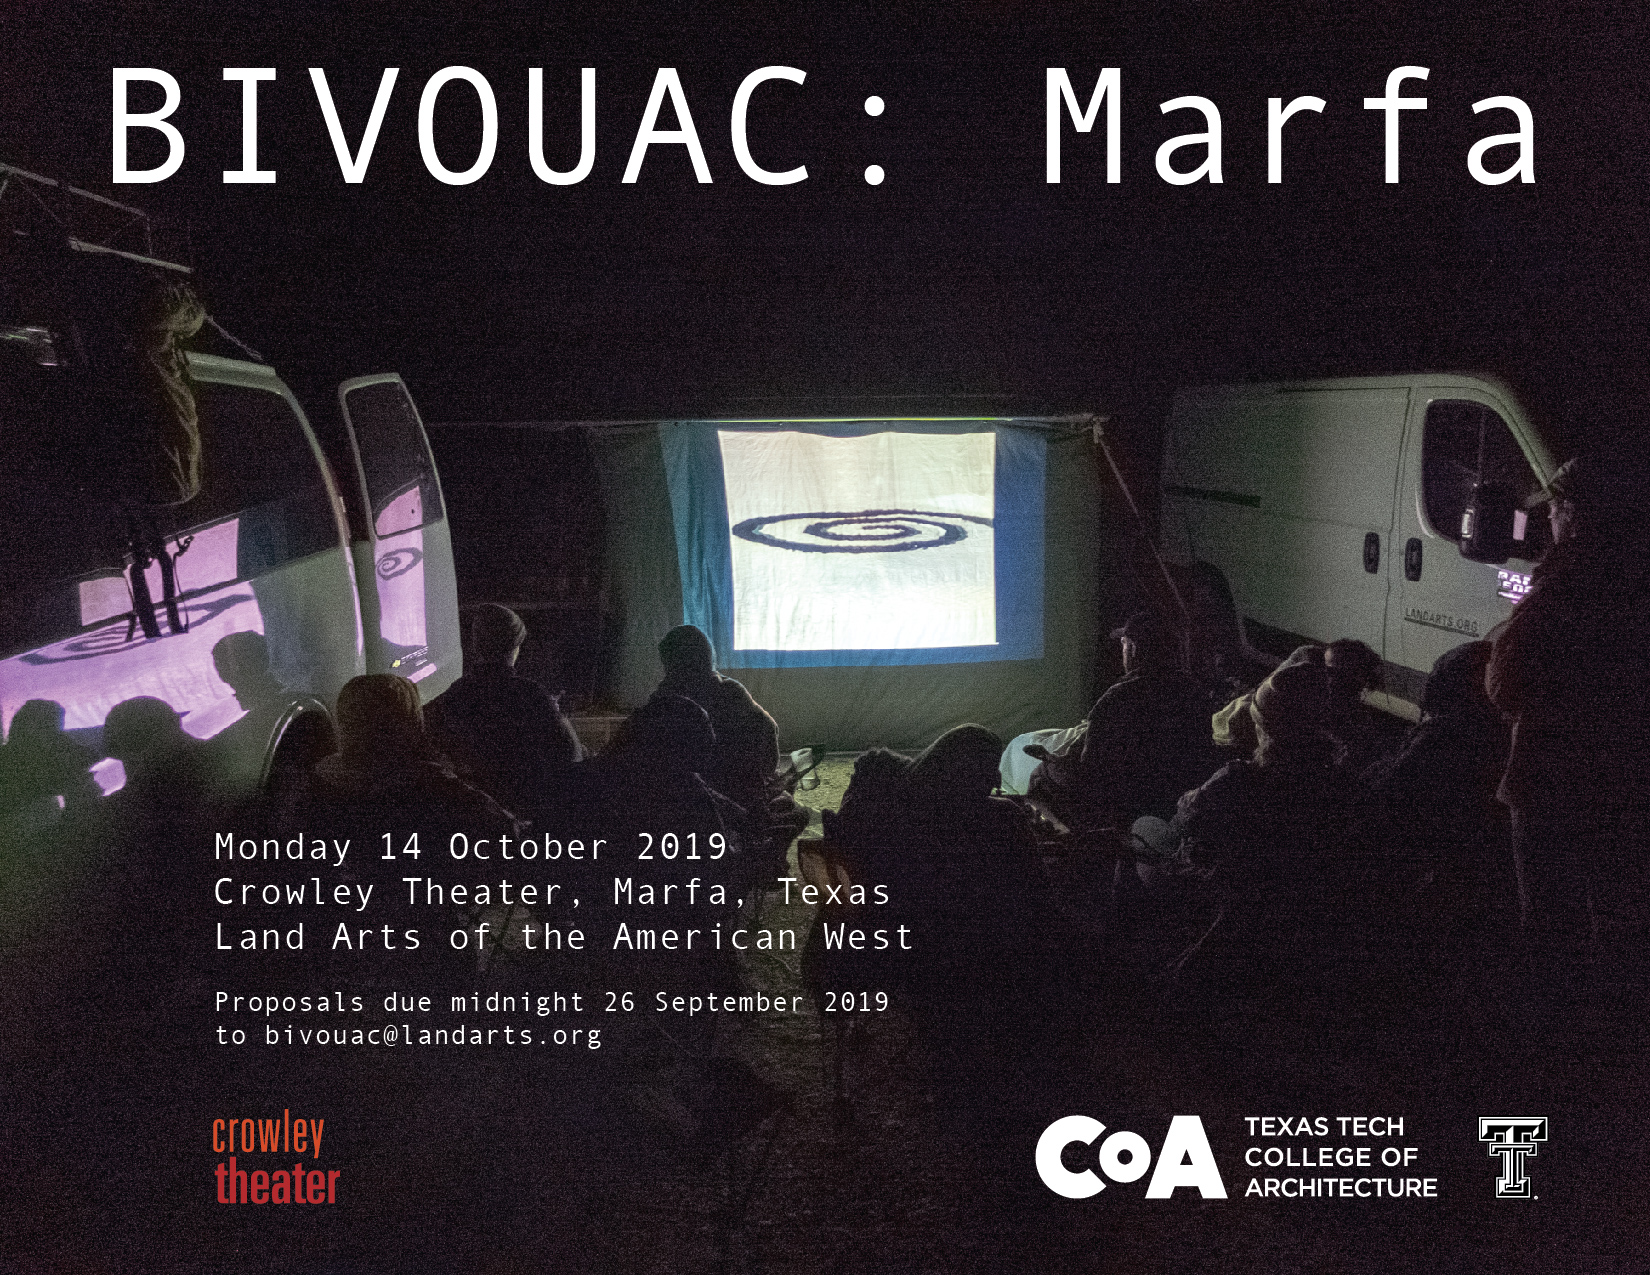 BIVOUAC: Marfa — Call for Proposals | Land Arts of the American West